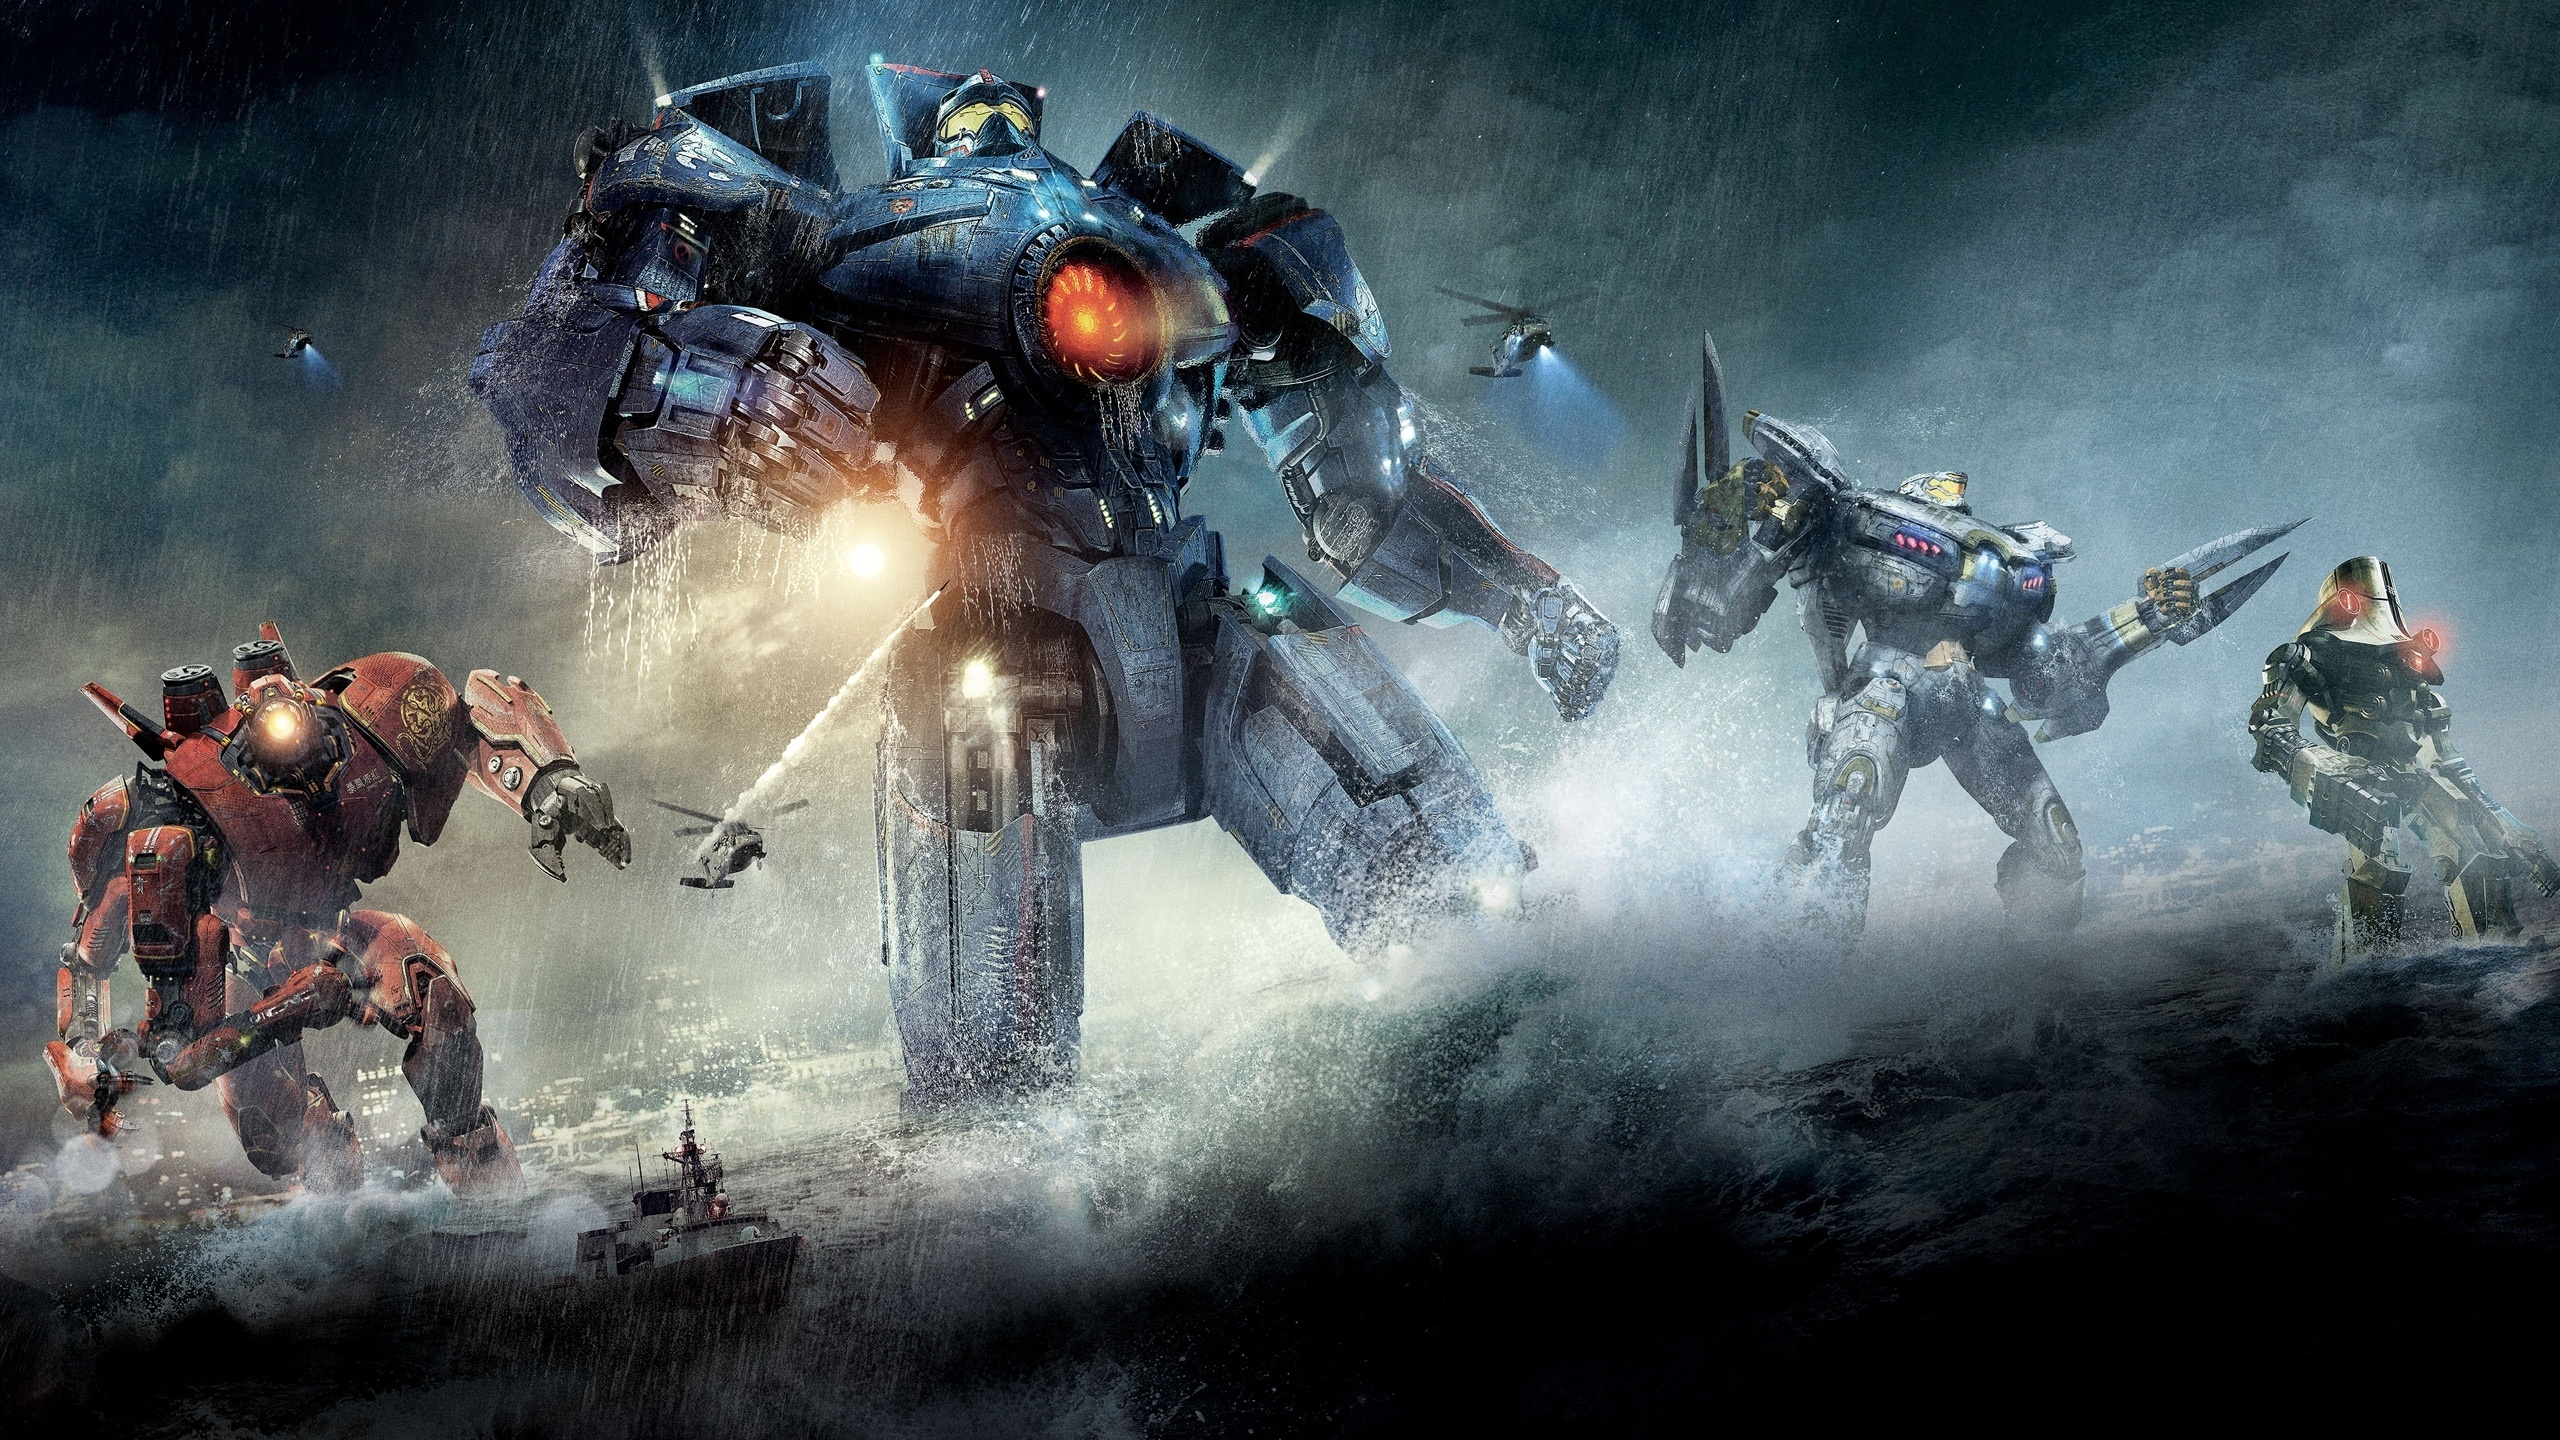 Pacific Rim Robots for 2560x1440 HDTV resolution